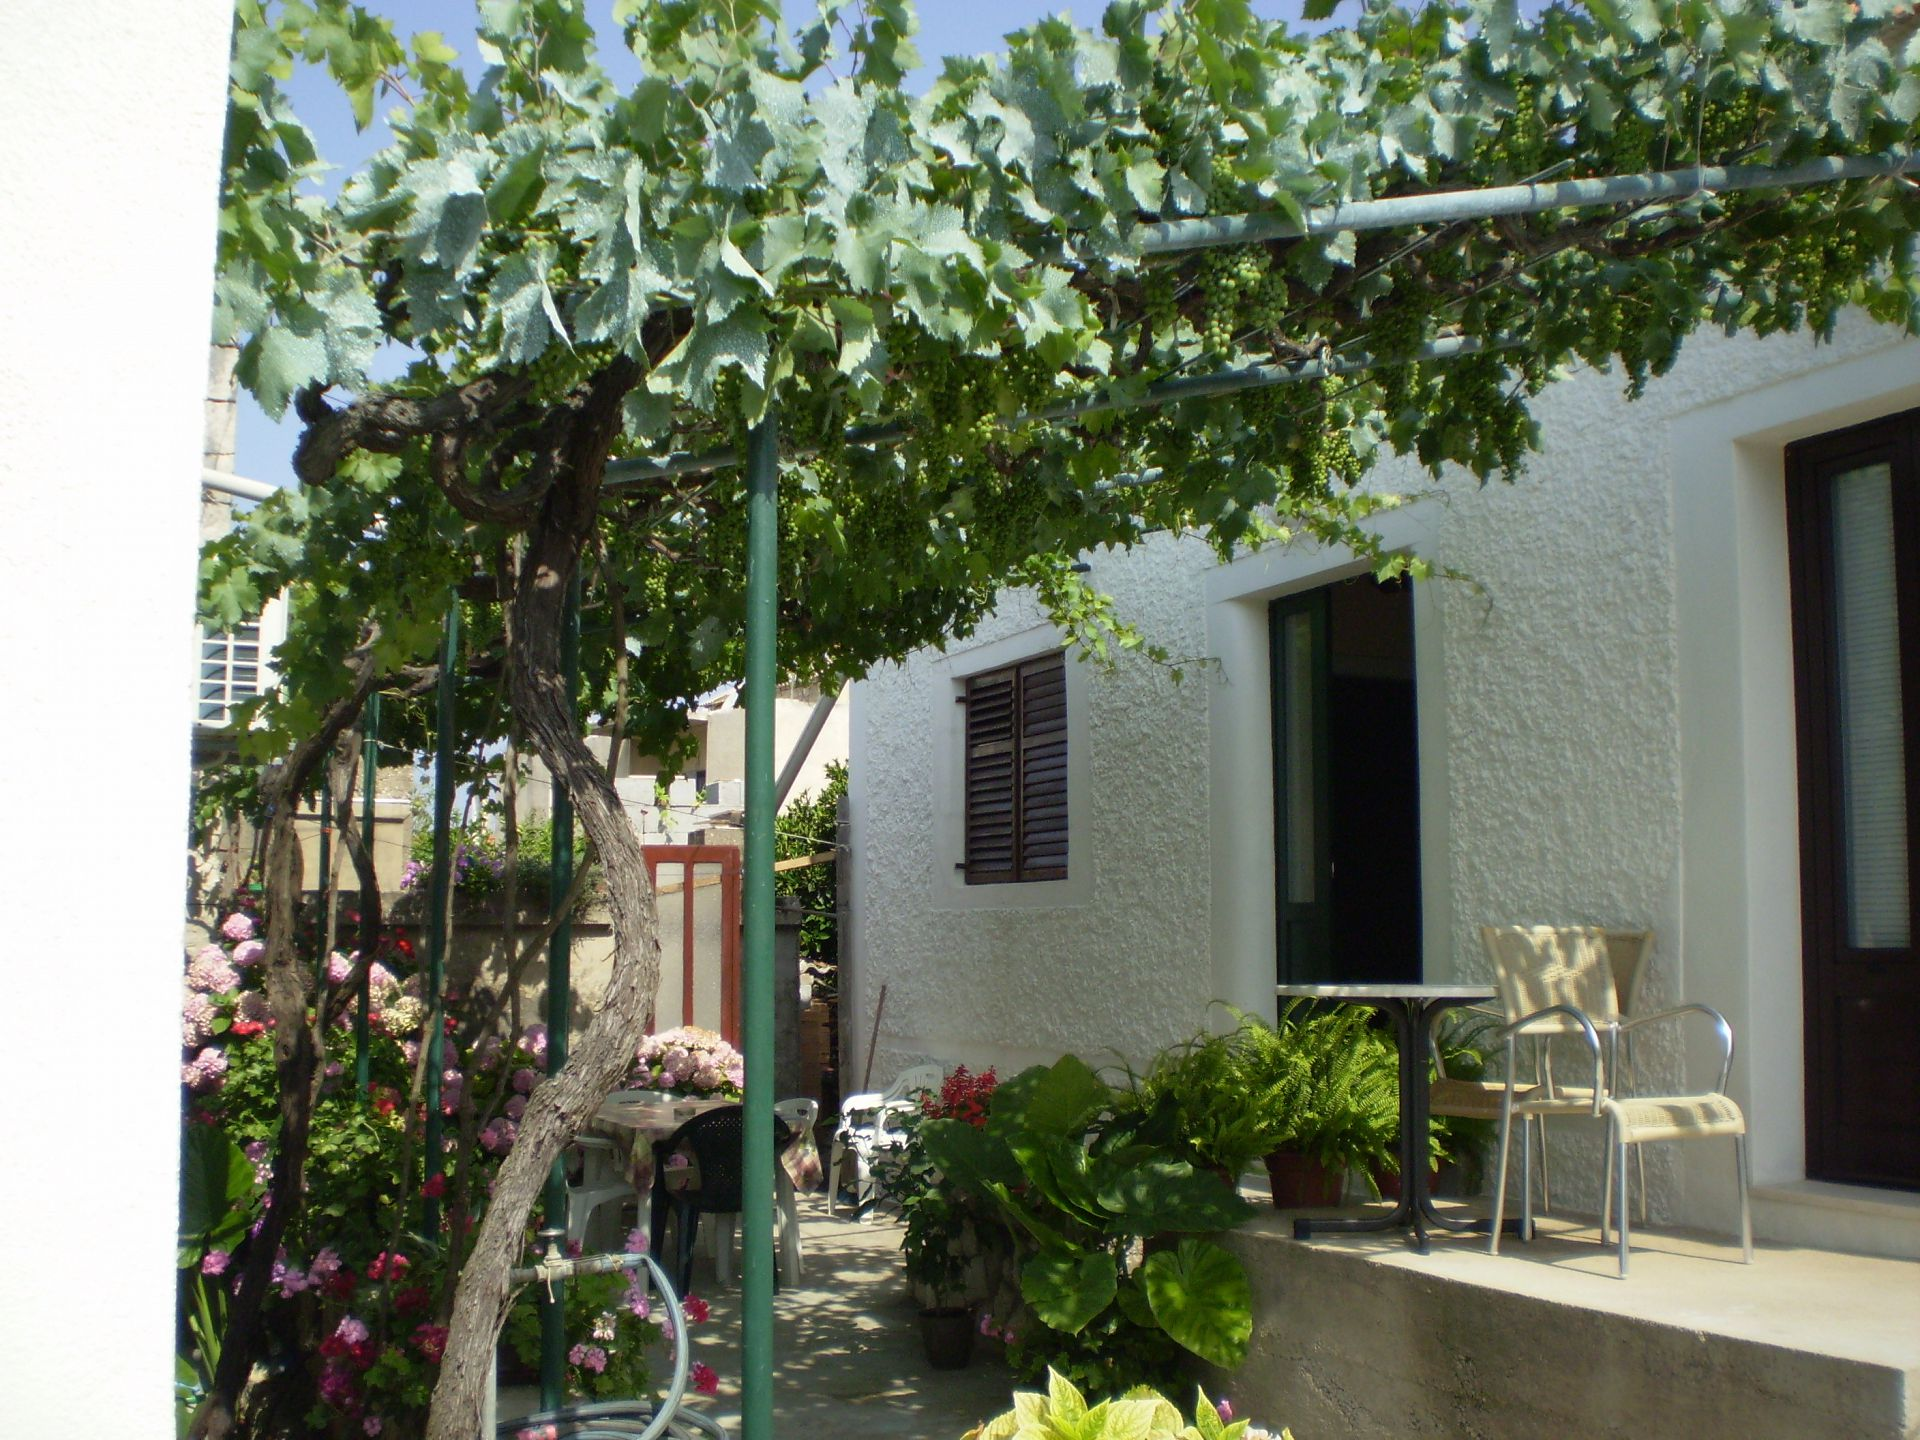 00703SUCU - Sucuraj - Holiday houses, villas Croatia